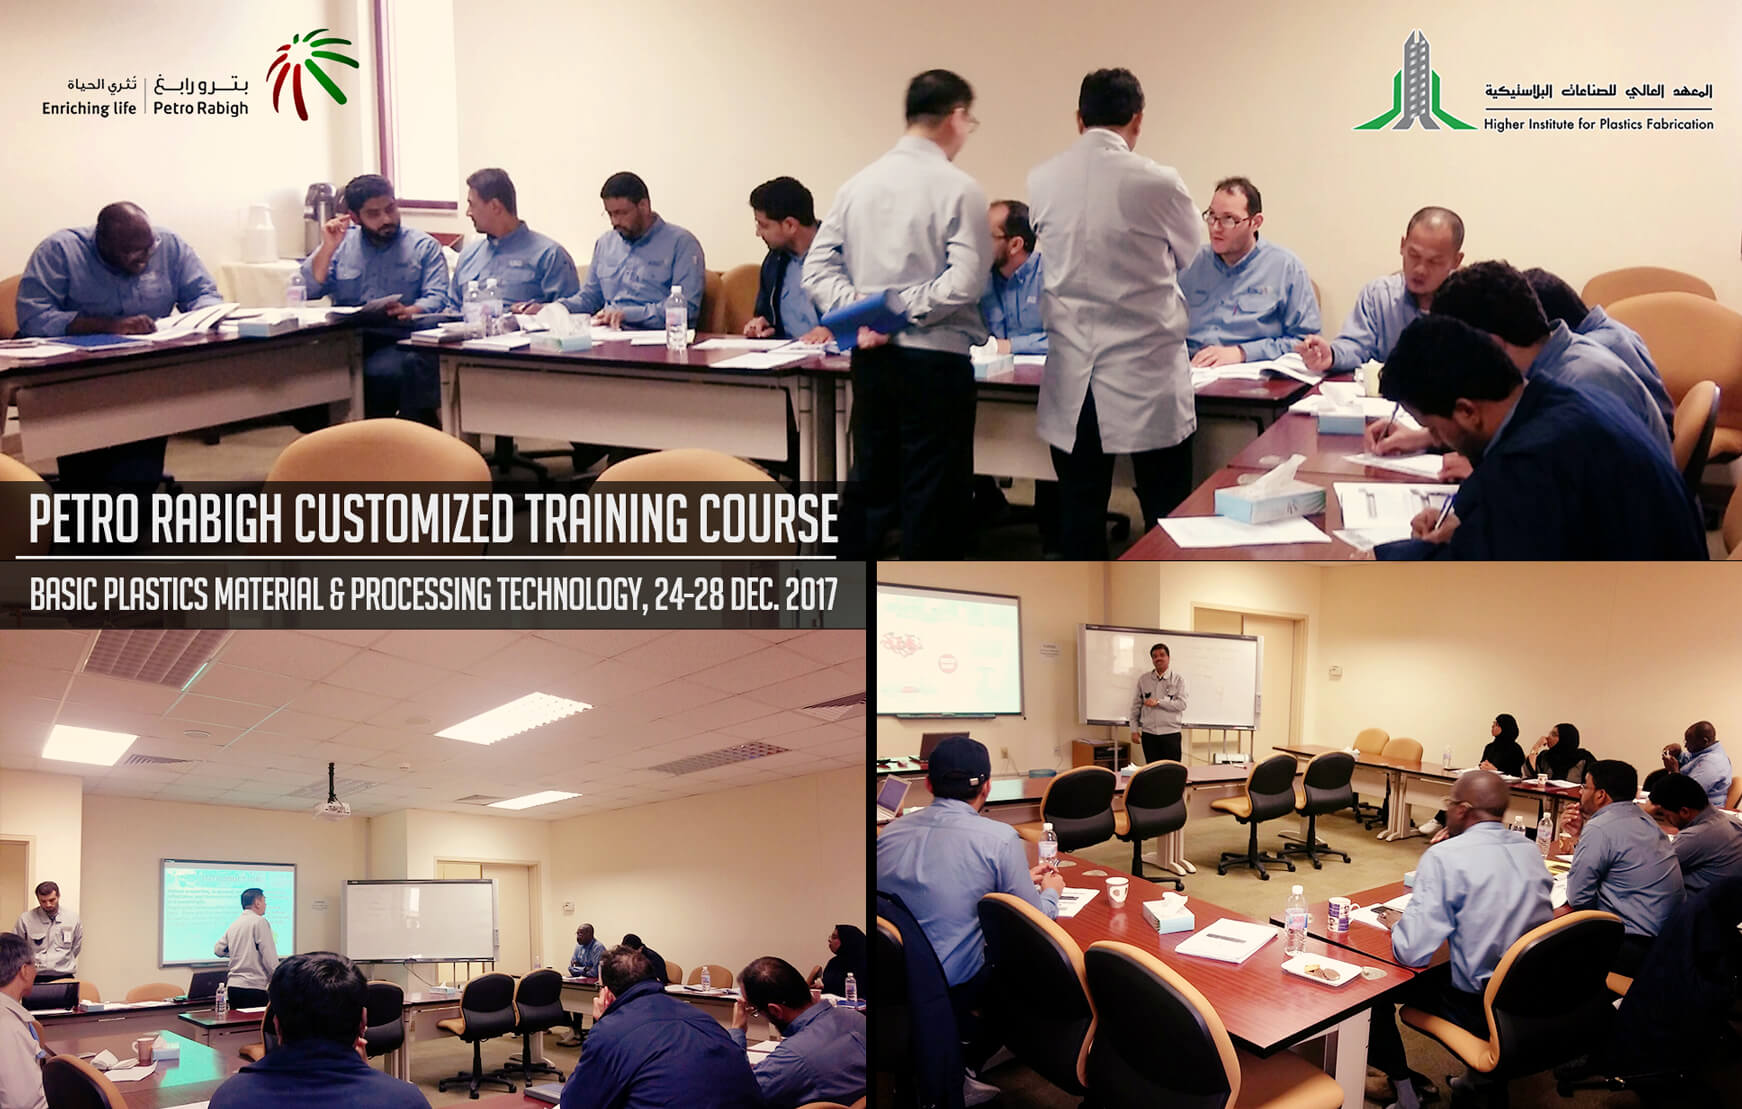 Customized Training Course for Petro Rabigh